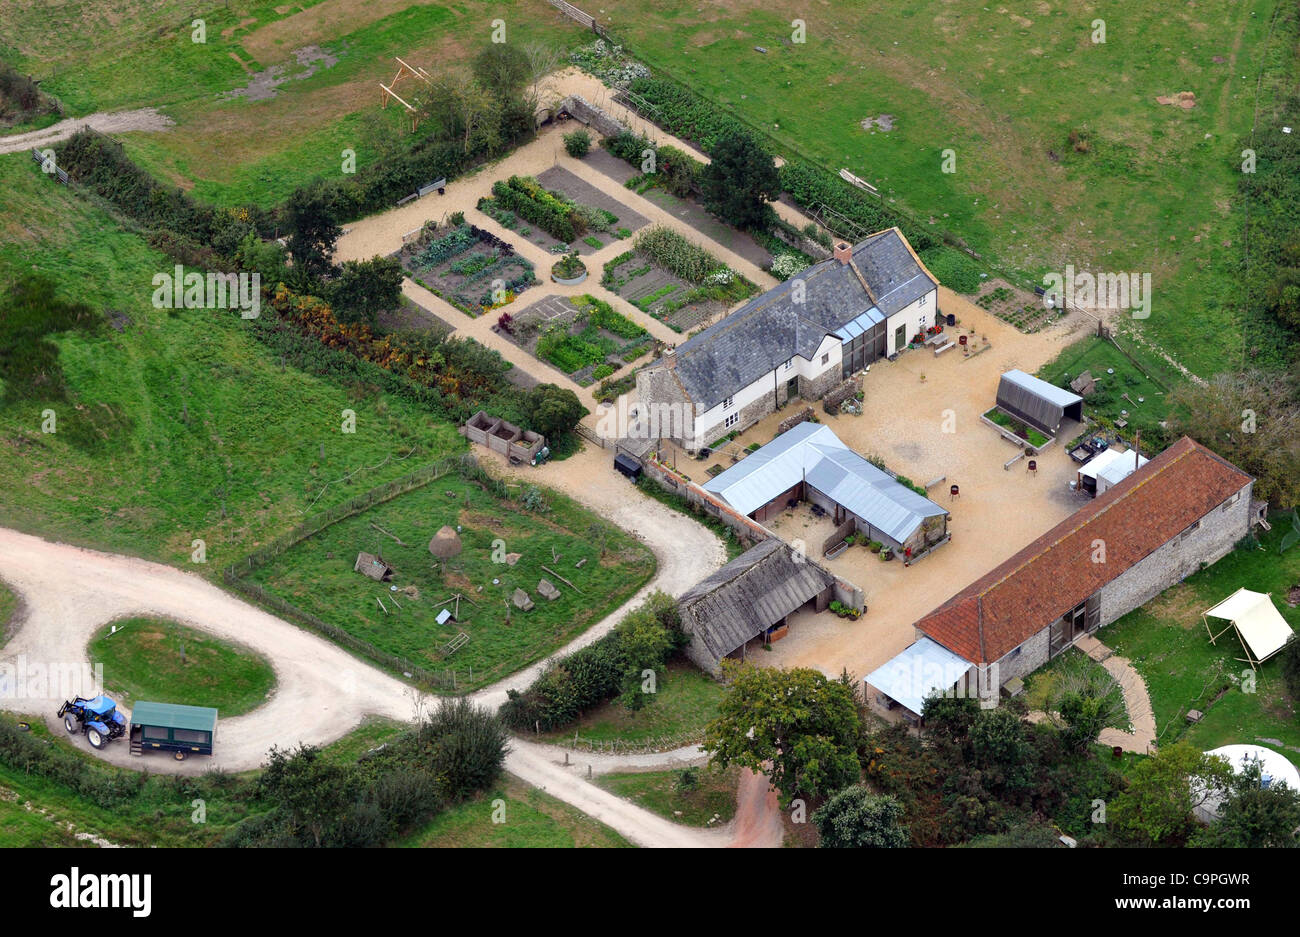 File picture (2009) aerial view of Hugh Fearnley-Whittingstall's River Cottage which was 'severely damaged' - Stock Image